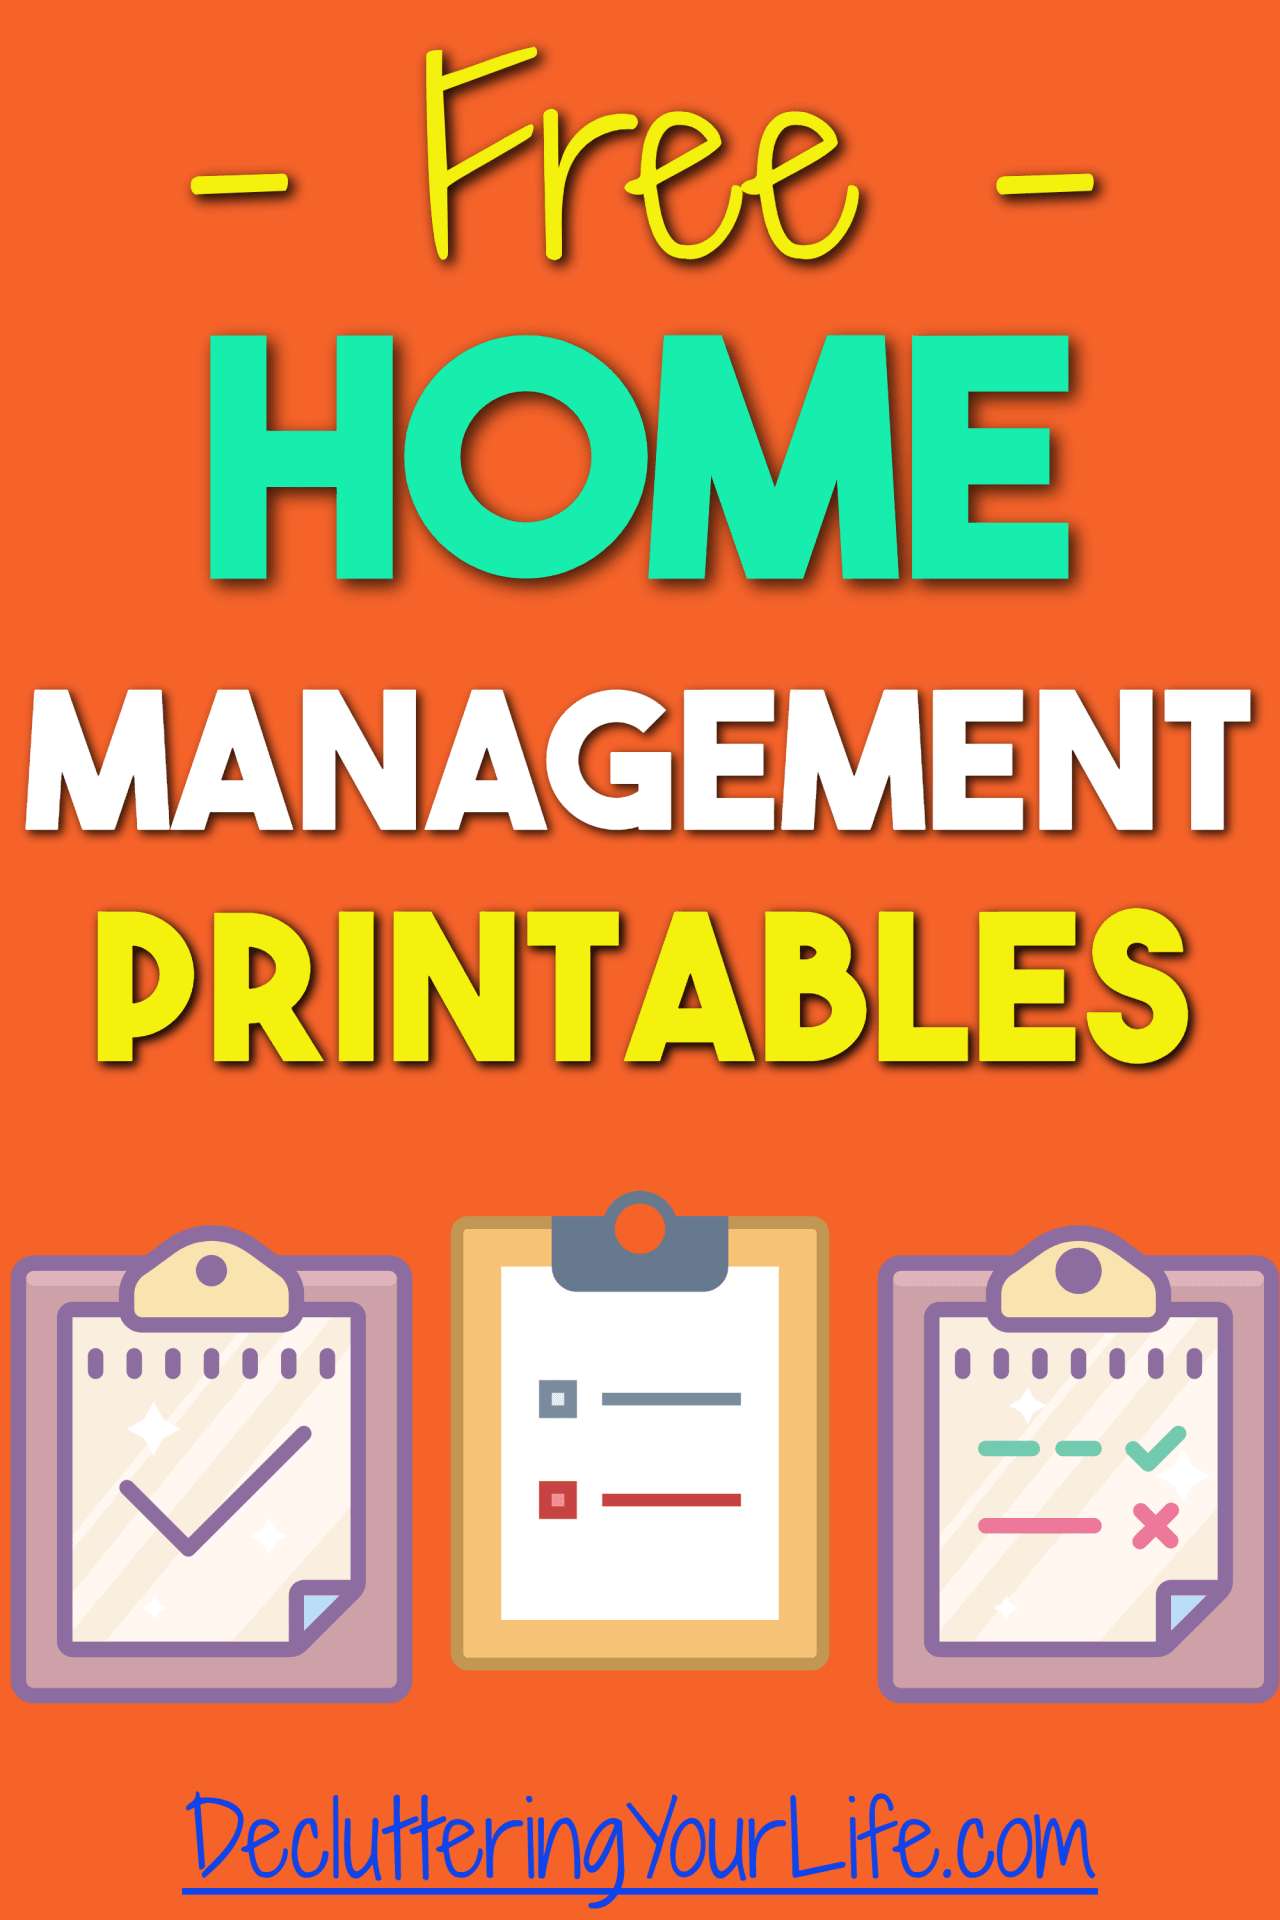 Free Home Management printables from Decluttering Your life